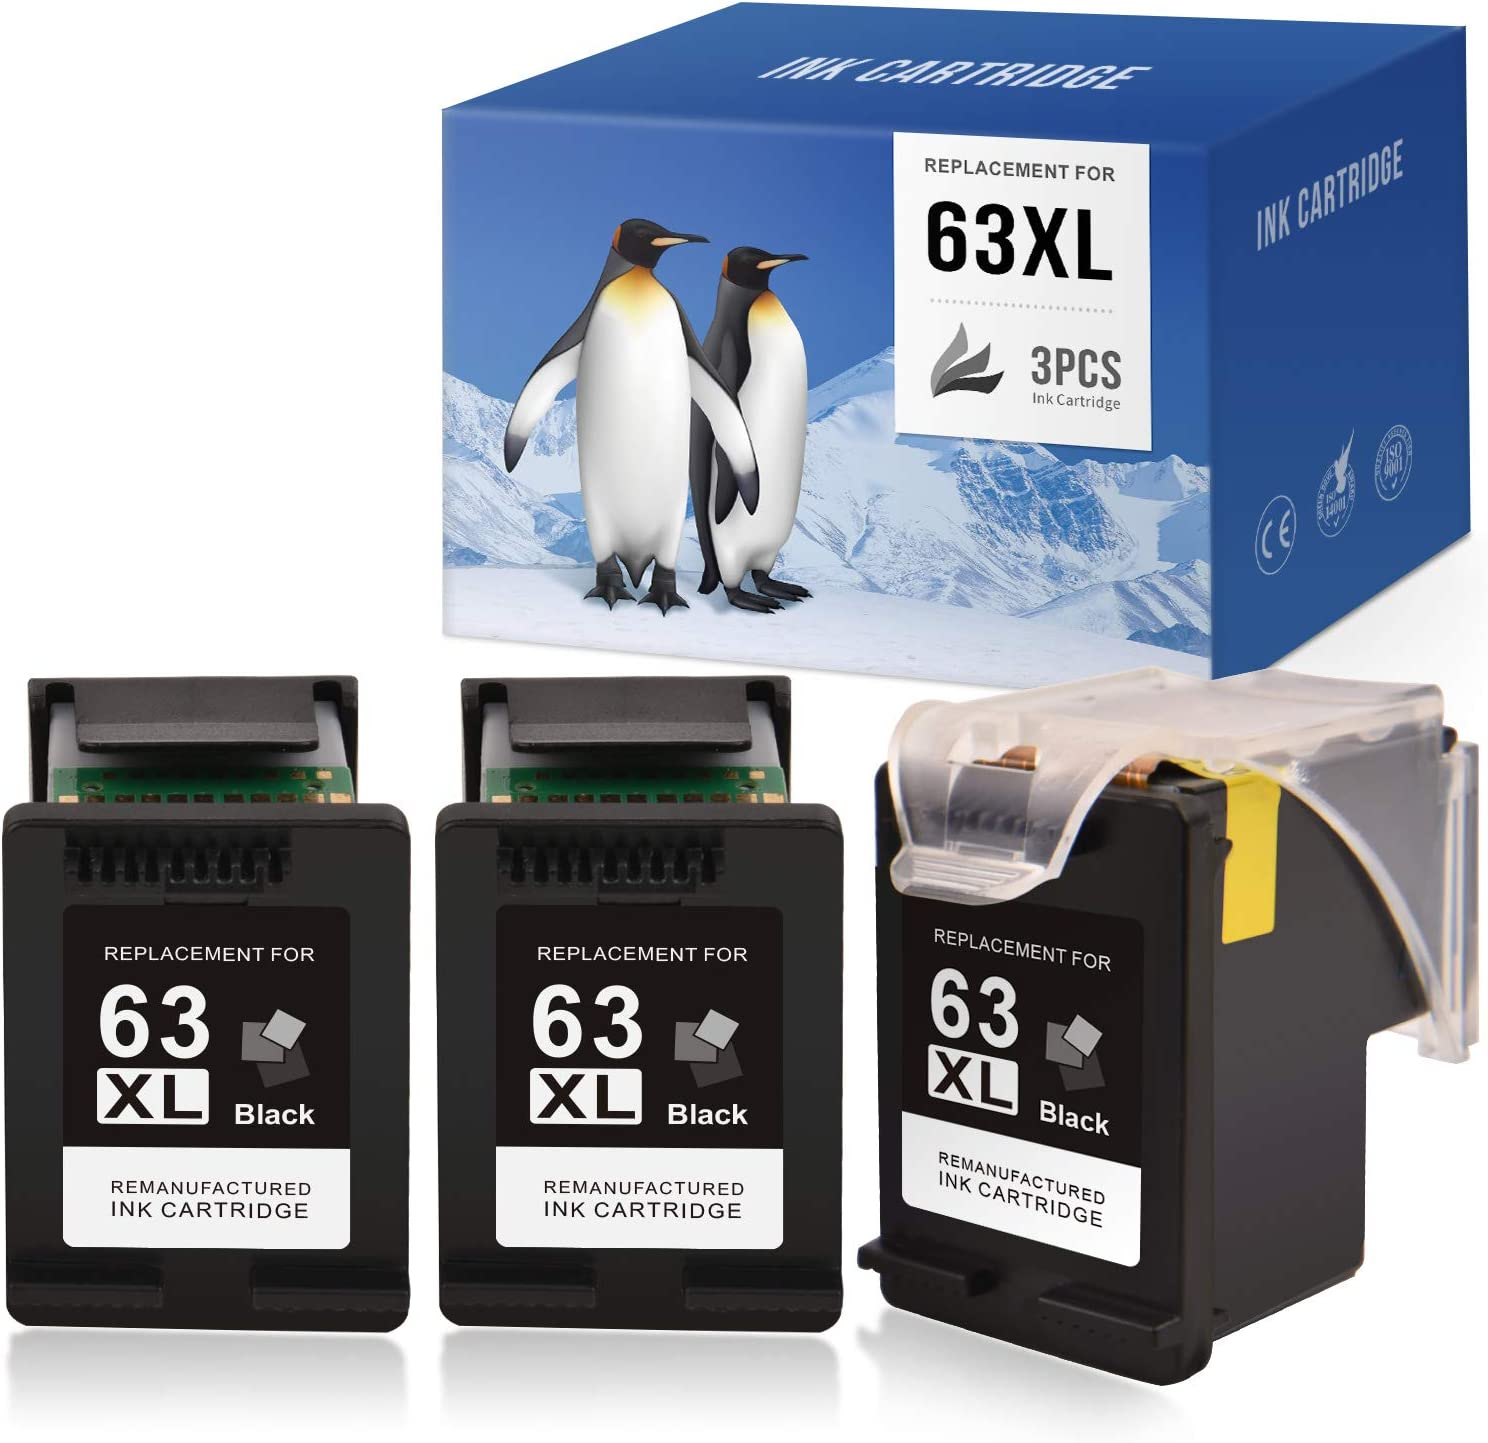 SAILNER Remanufactured Ink Cartridge Replacement for HP 63 63XL 63 XL Eco-Saver use with OfficeJet 3830 5255 5258 4650 4655 Envy 4520 4512 DeskJet 1112 1110 3632 3630 (Black, 1+2 Pack)